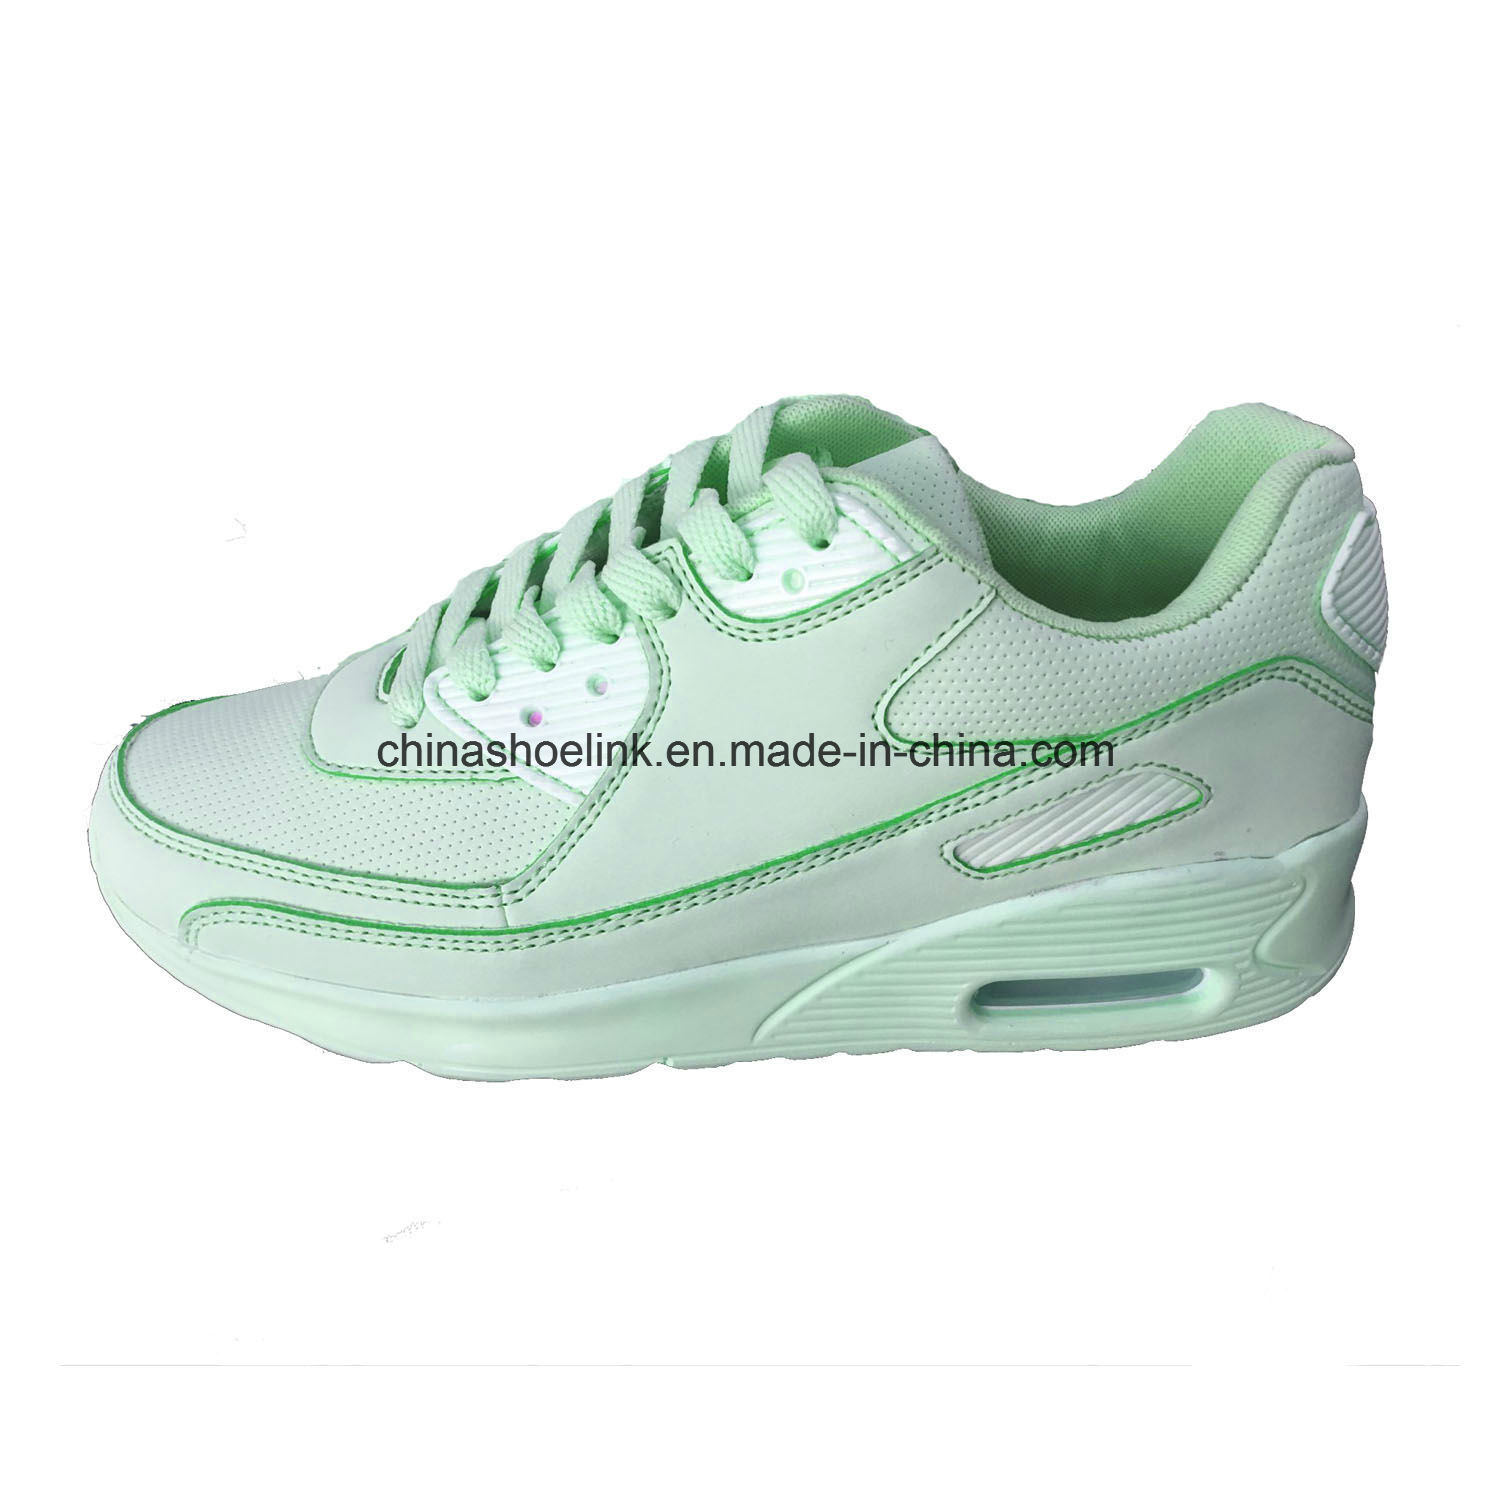 New Fashion Sport Casual Shoes, Athletic Shoes, Sneaker Shoes for Women